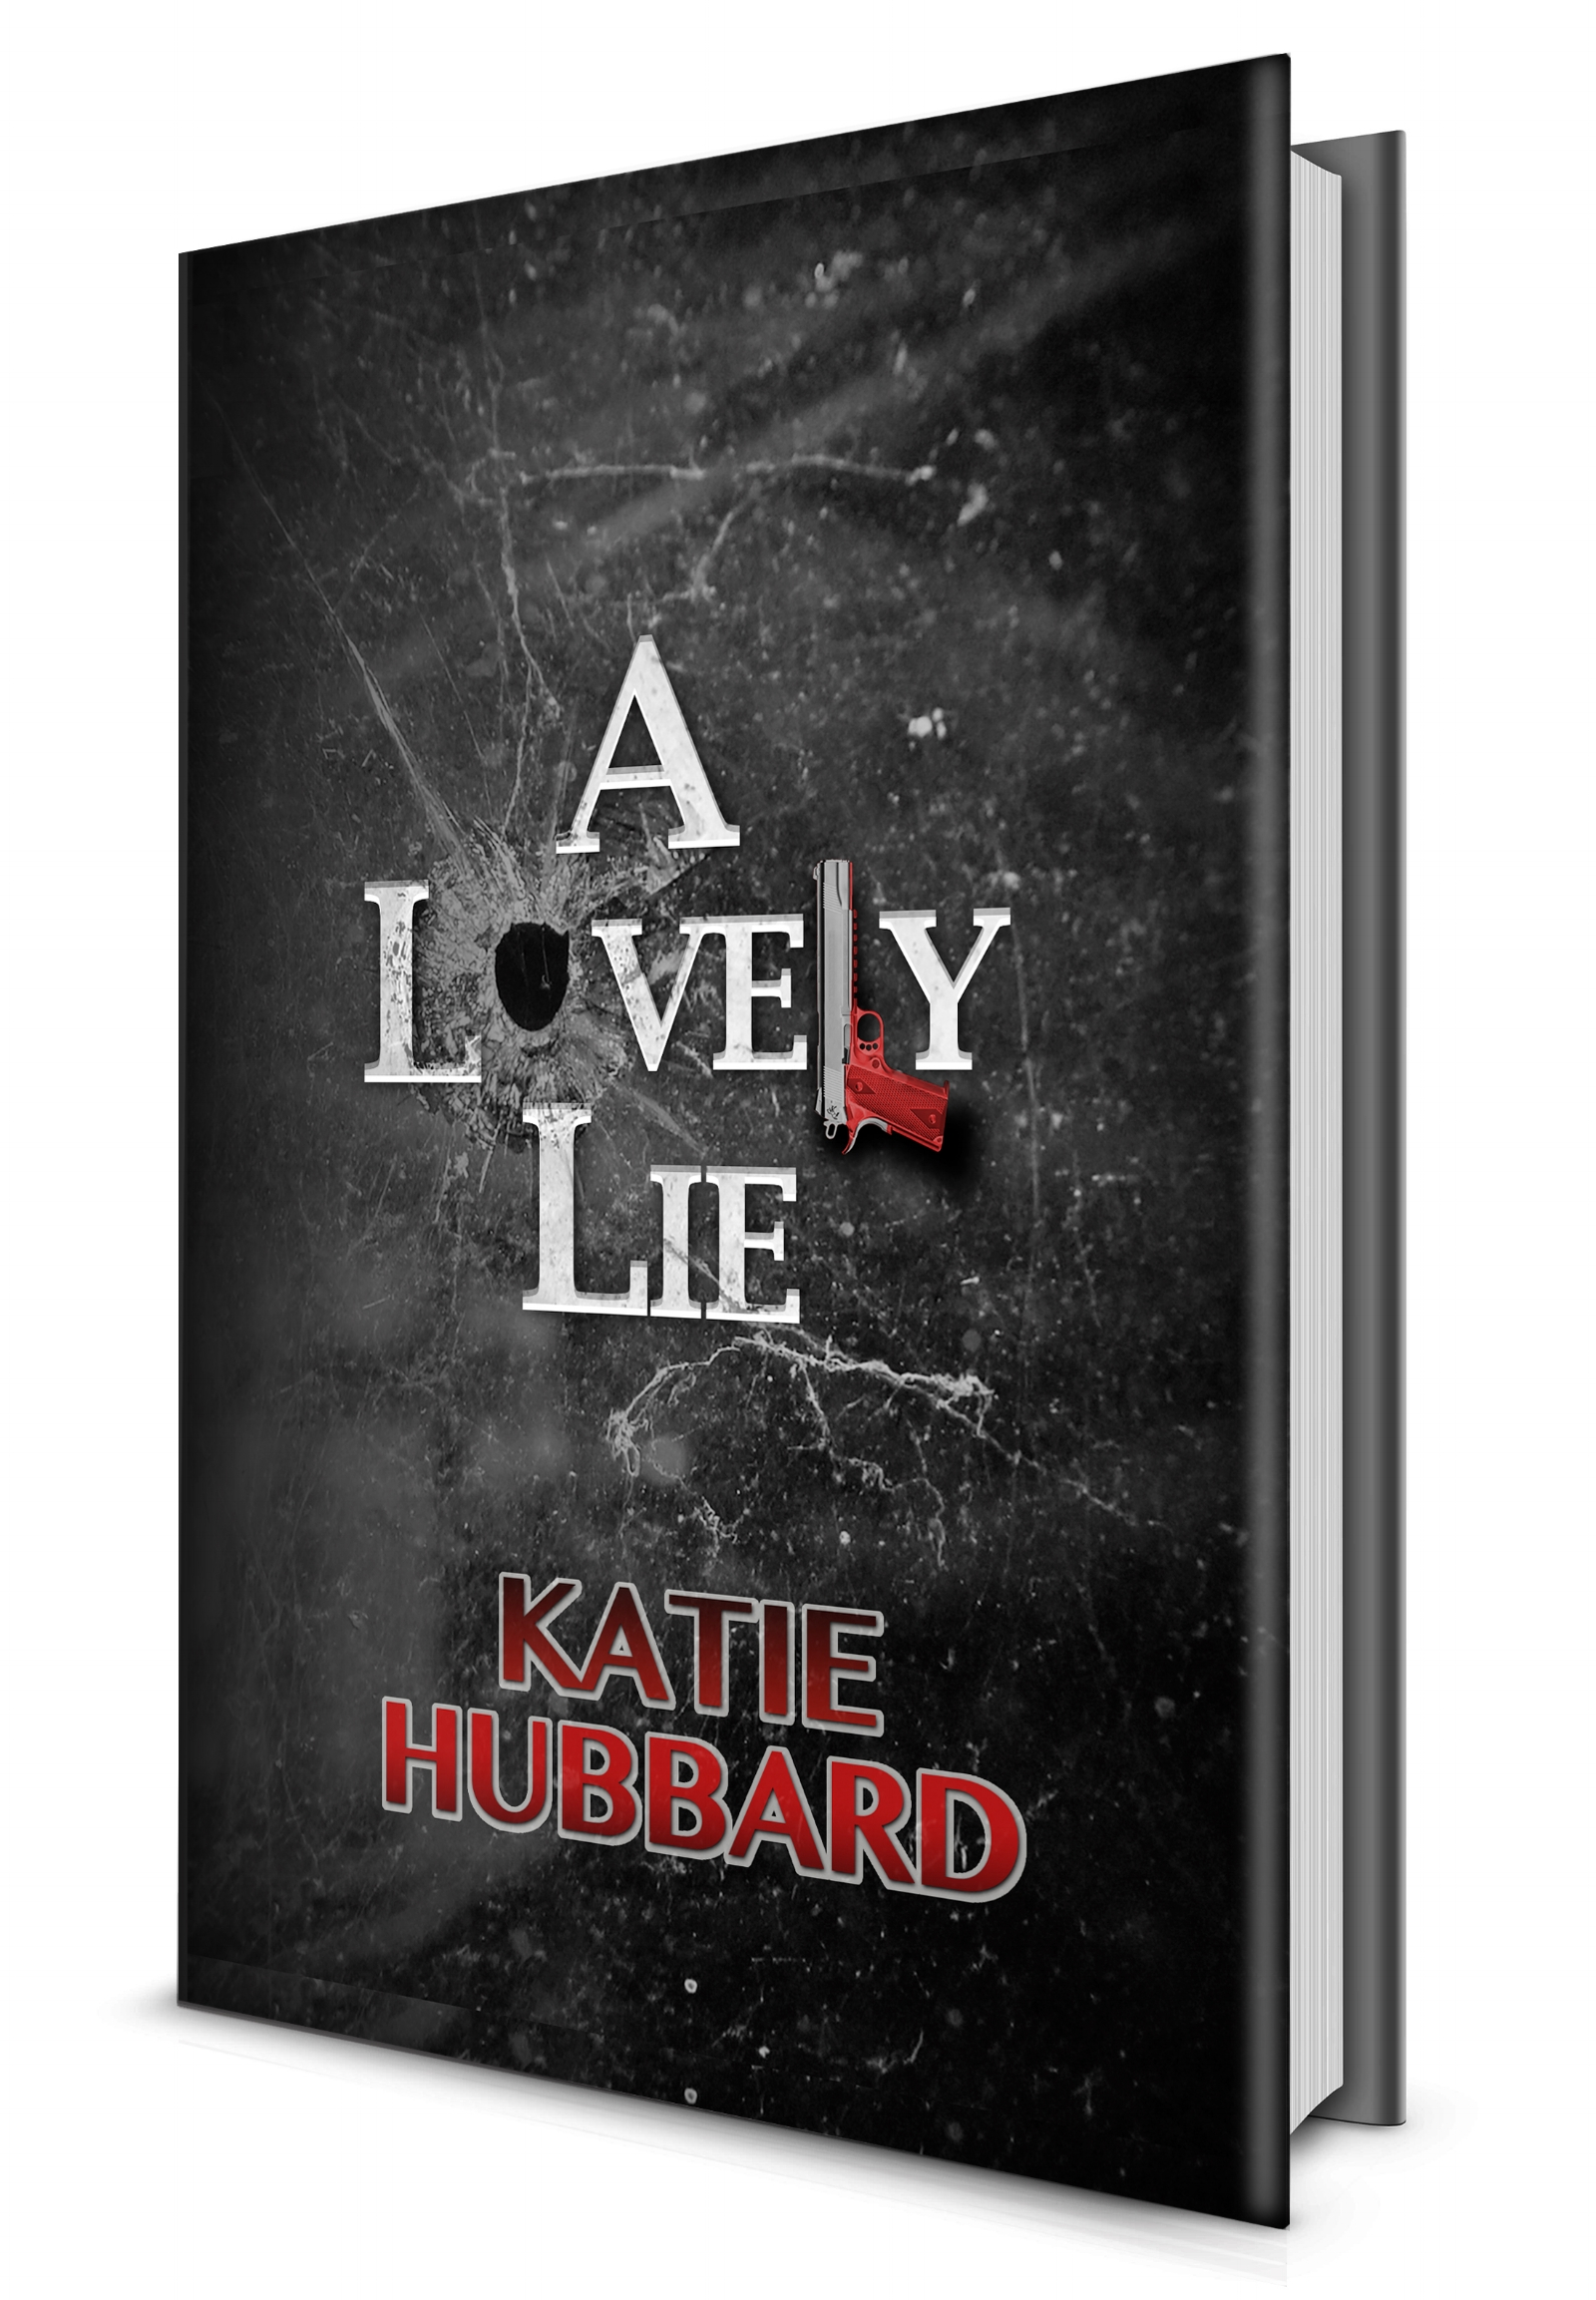 "A Lovely Lie - (Book 1 of Series)Driven by a fierce determination to be ""protectors,"" two life-long best friends, Carrie and Gina, willfully enter into a secret agreement. They didn't realize that it would be a pact that would forever control not only their lives but also the future of Carrie's only grandchild, Vivi.When a hateful act of senseless brutality redirects everything for Carrie, she is left to wrestle with the torment of taking revenge in her own hands, or fighting fairly. Carrie and Gina's pursuit of justice becomes murky when each new day unfolds lies and deceit. Their judgment and sense of clarity become clouded by their fatigue and anguish.Her extraordinary, gut-wrenching actions redefine and challenge long-held definitions of love as she makes an unspeakable sacrifice for Vivi."